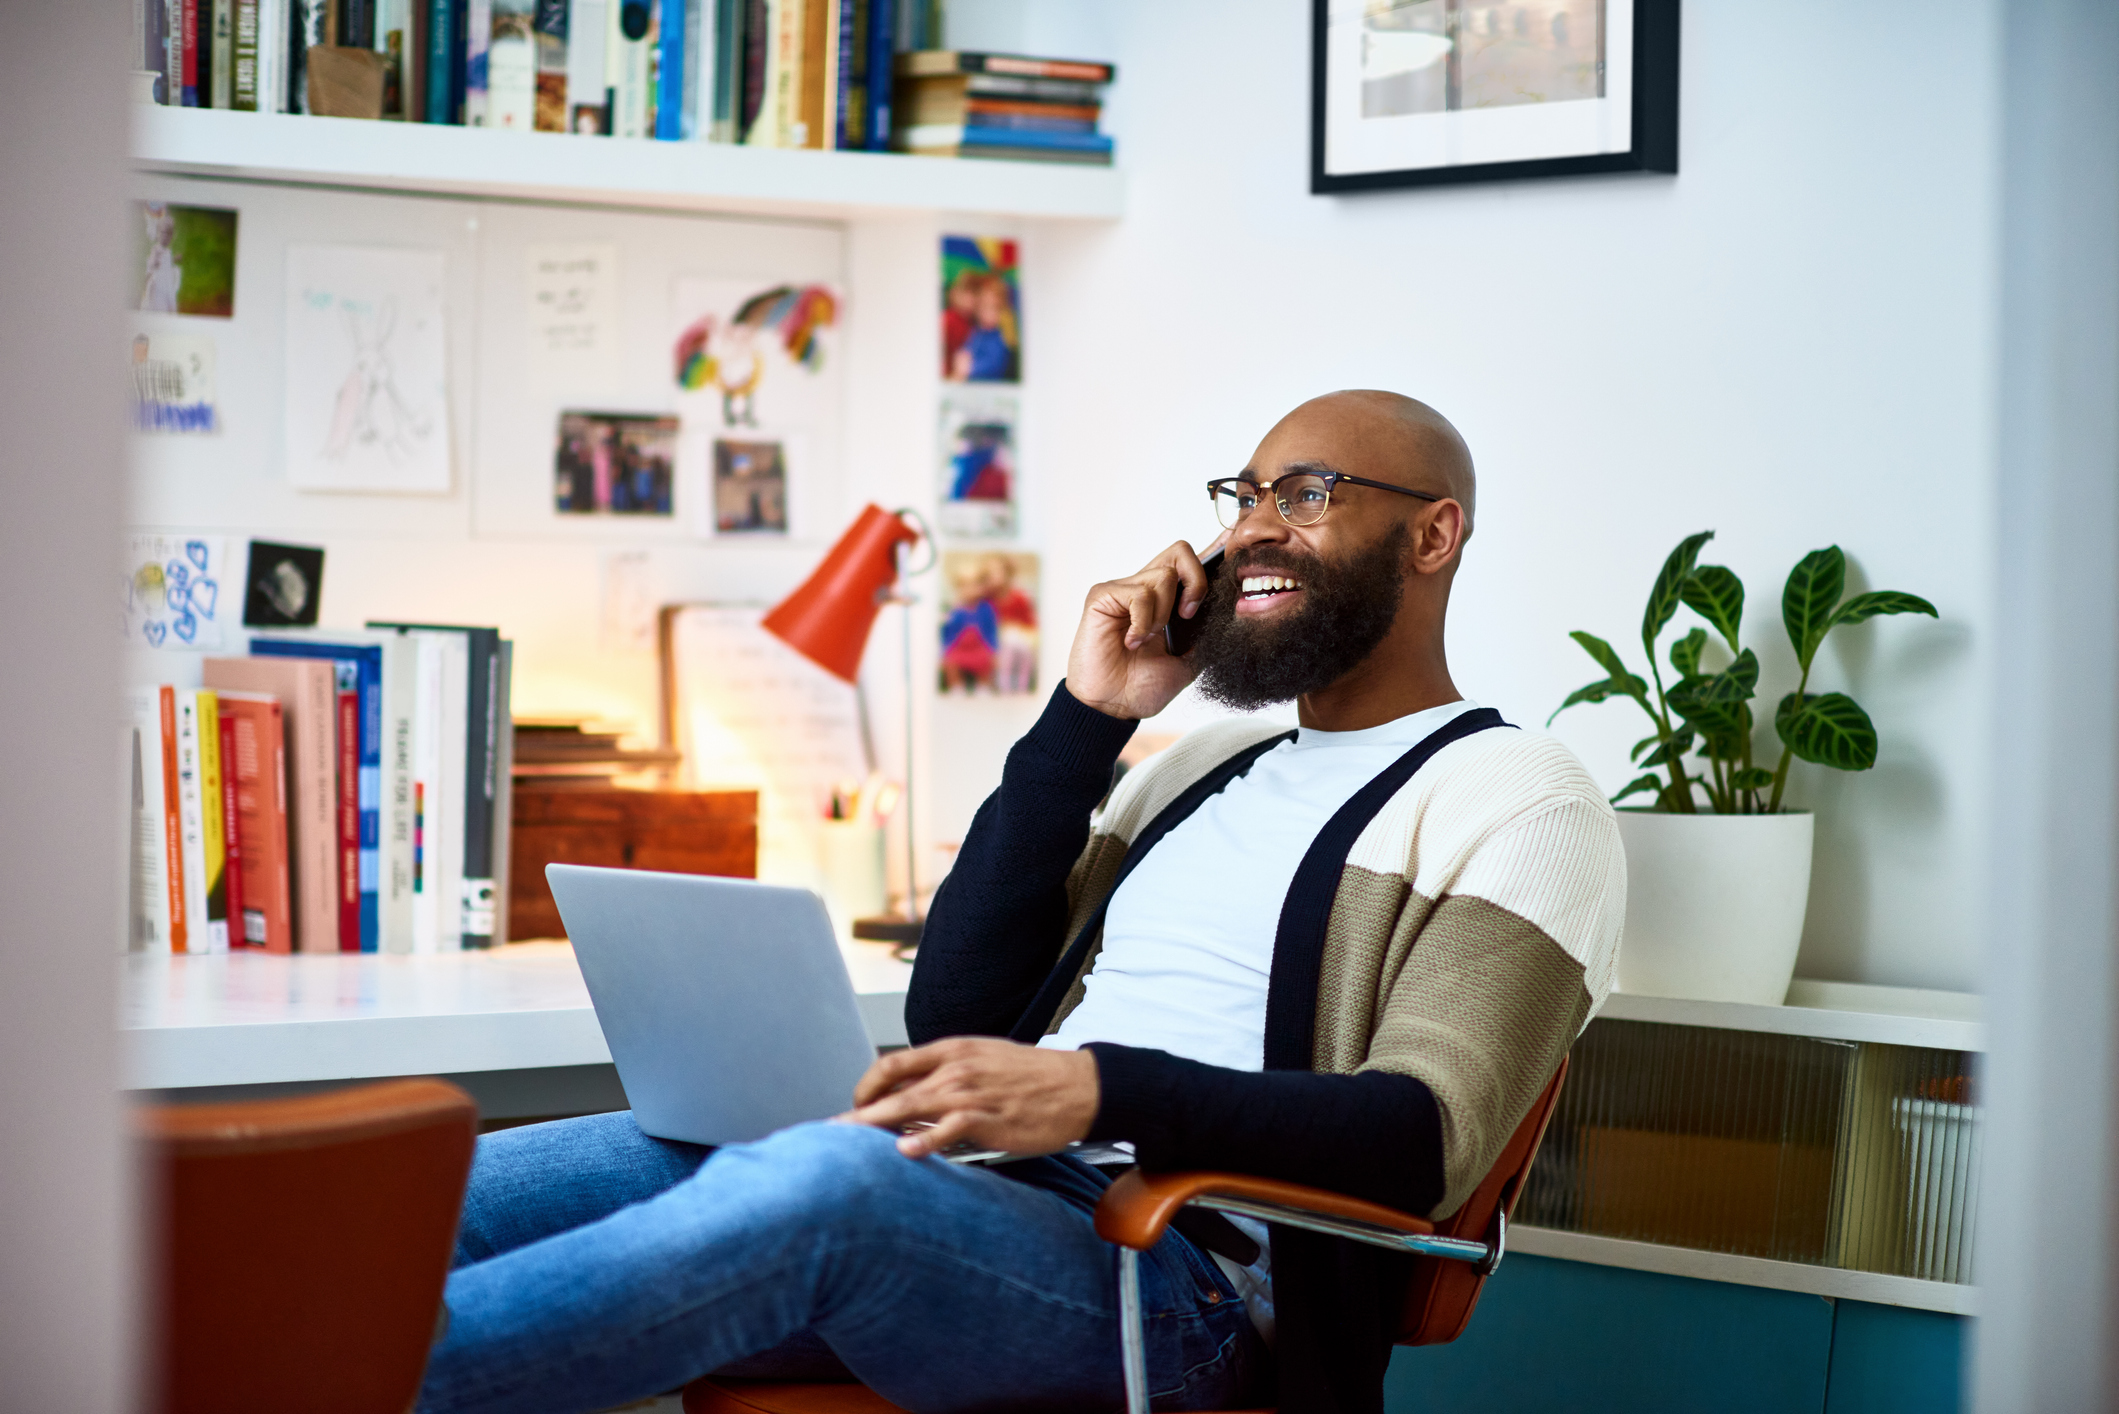 Man sitting on chair with laptop on phone call